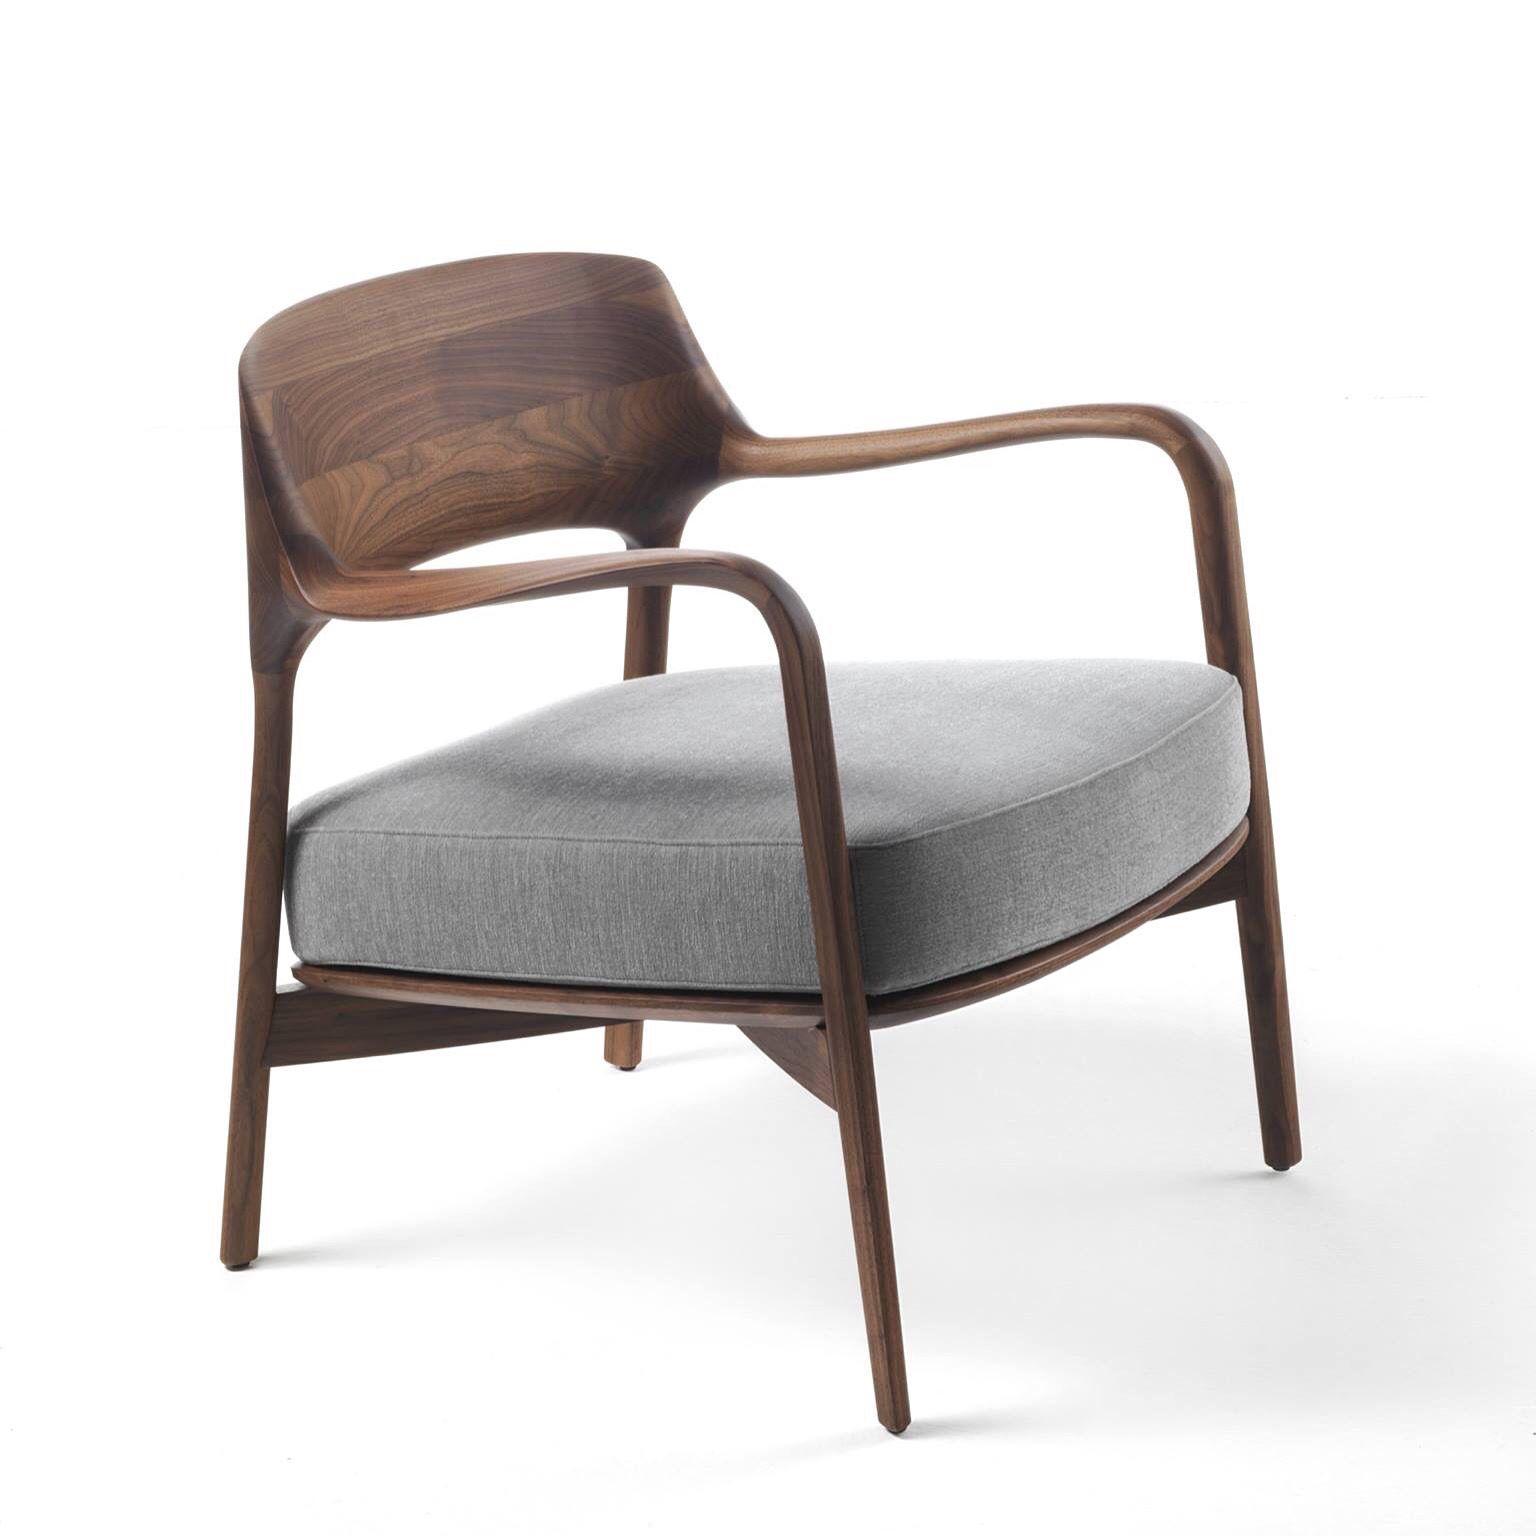 Ella chair designed by Patrick Jouin for Porada